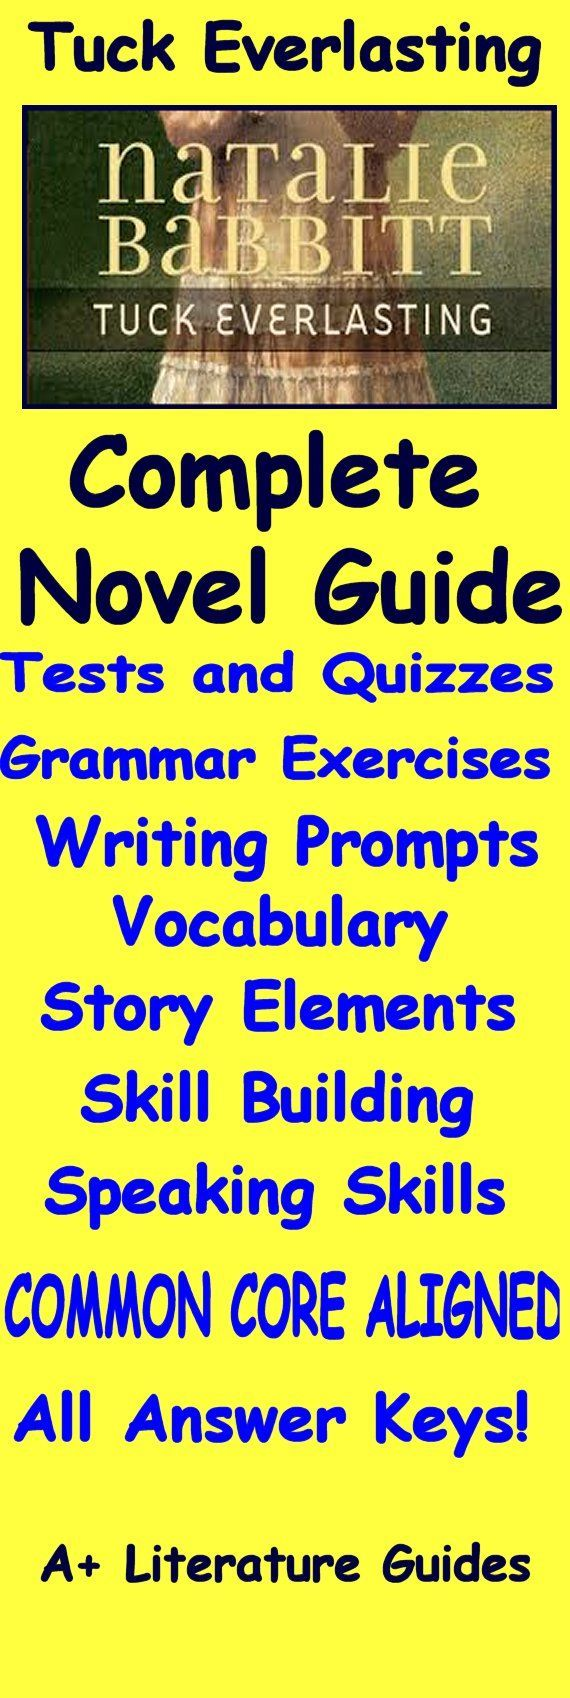 best ideas about tuck everlasting tuck this is an 101 page complete literature guide for the novel tuck everlasting by natalie babbitt